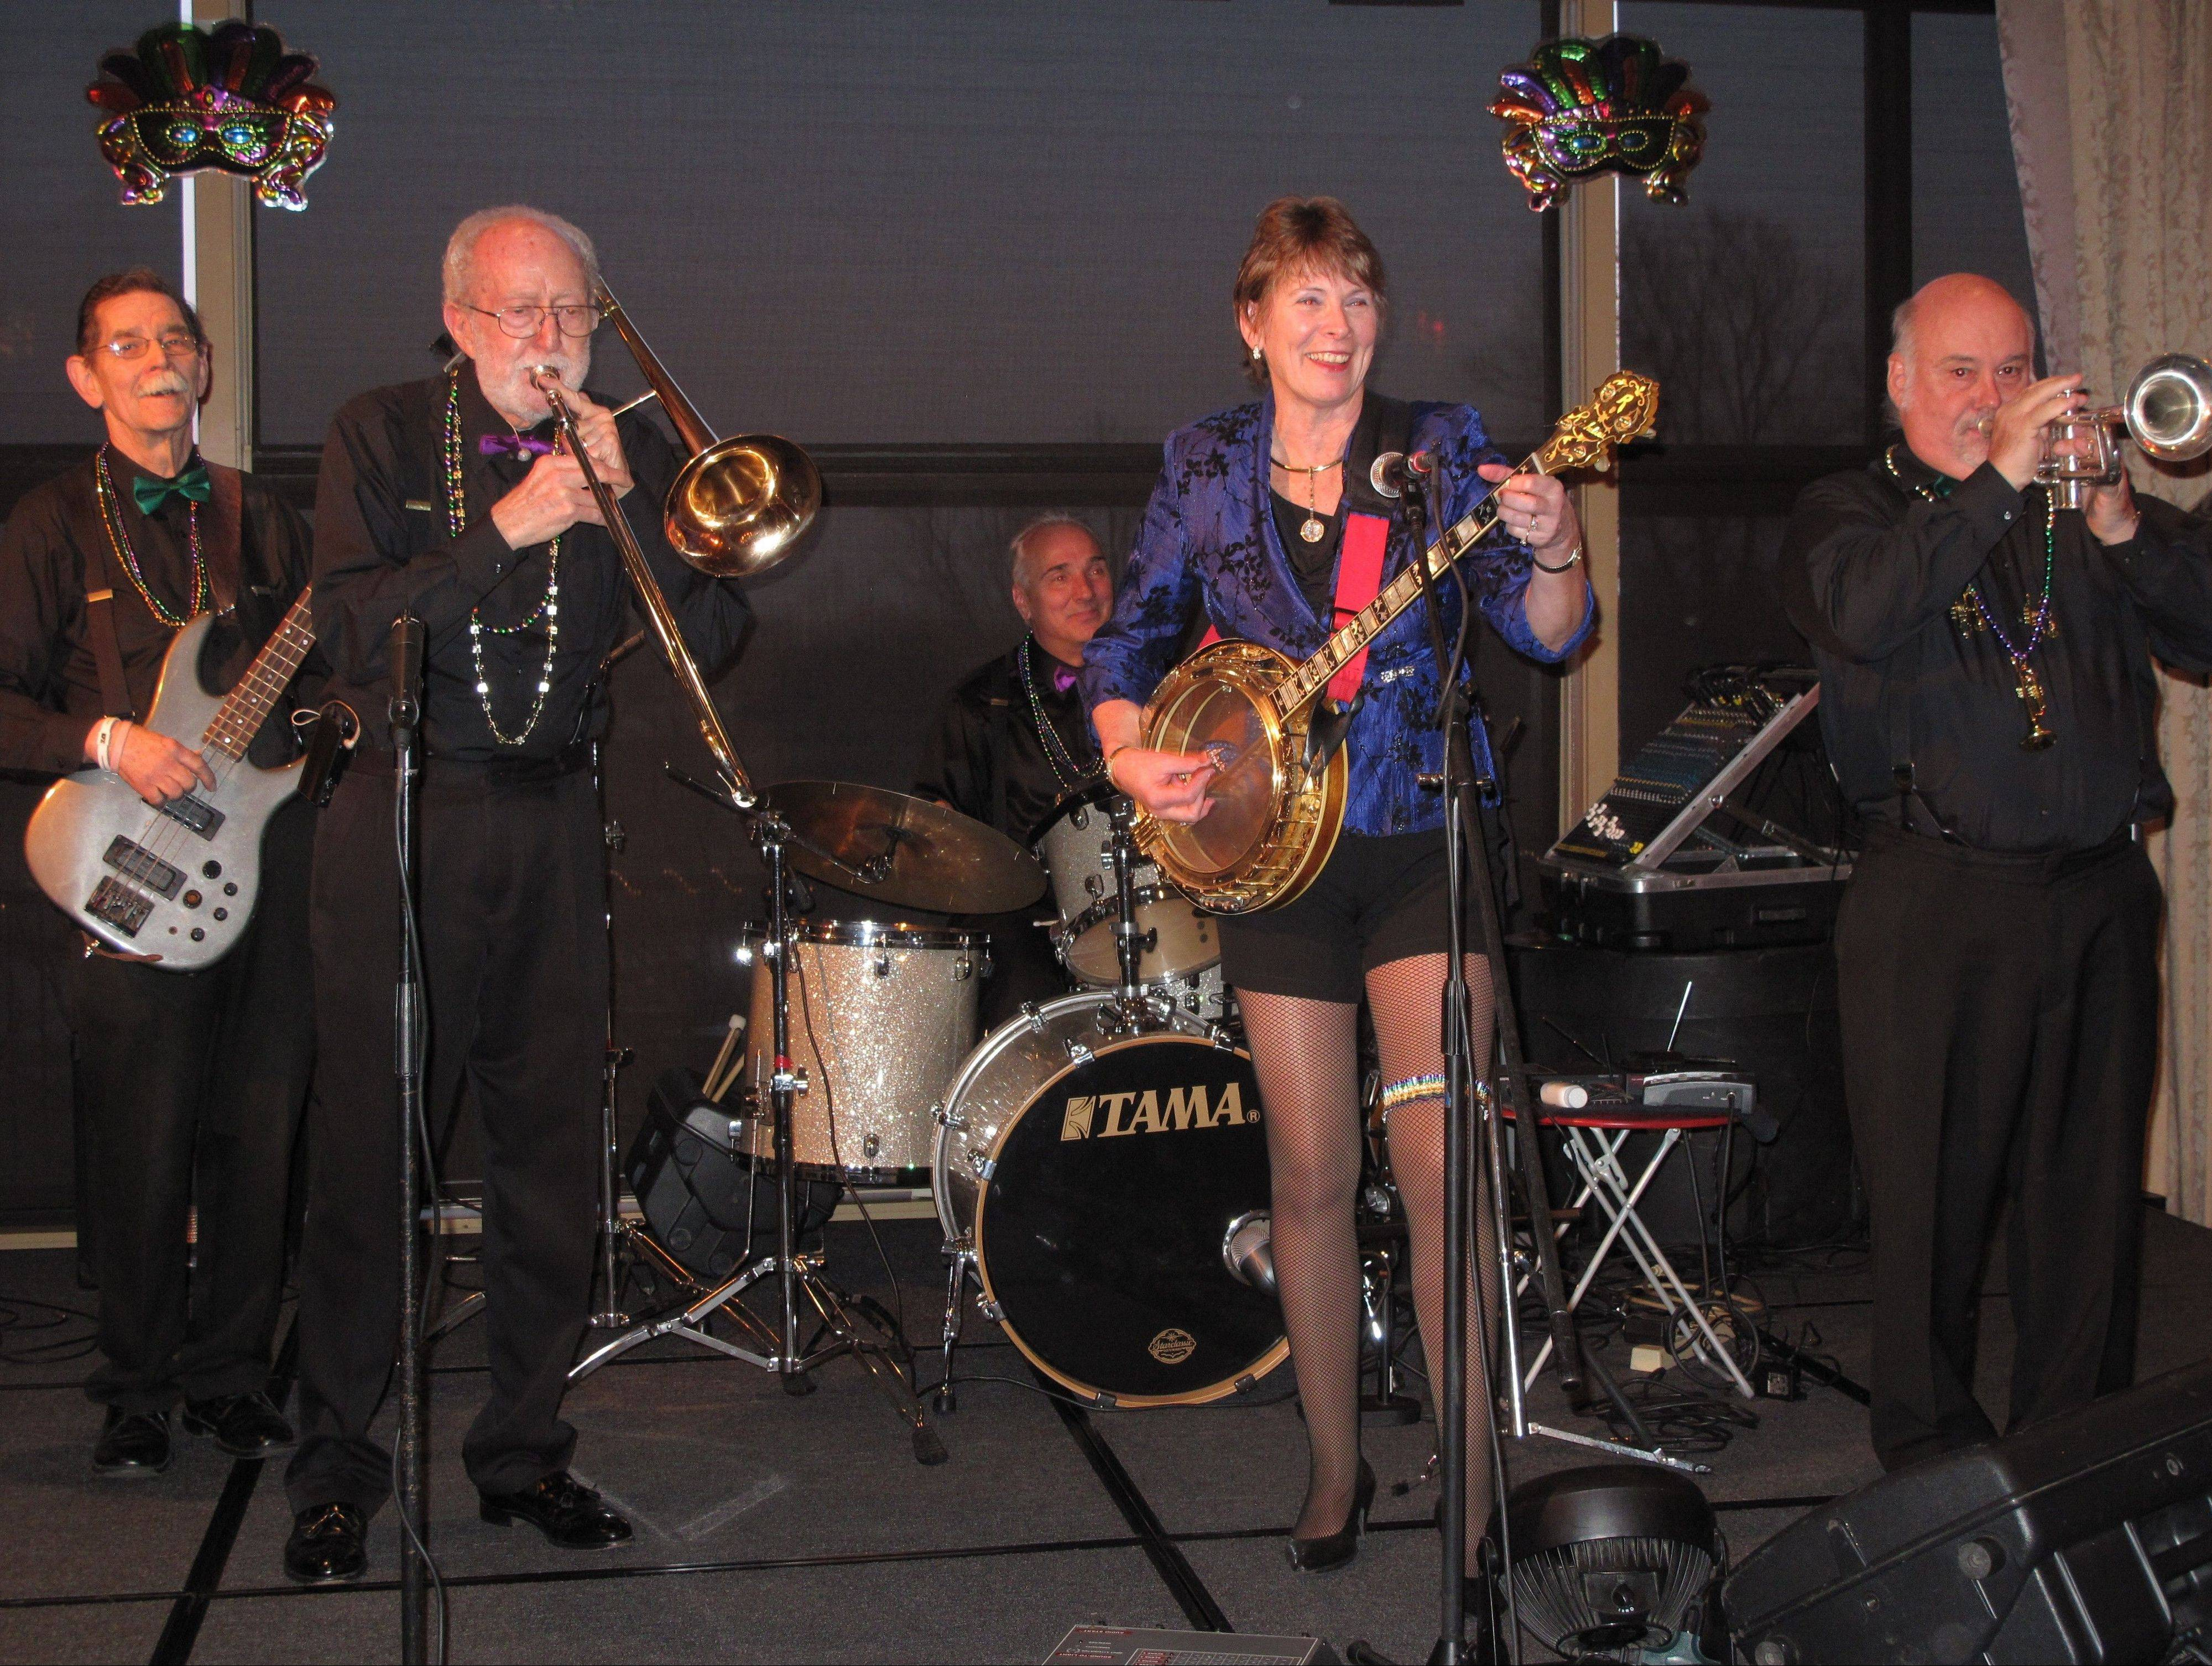 The Banjo Buddies Dixieland Jazz Band performs at a private event in Bloomingdale.